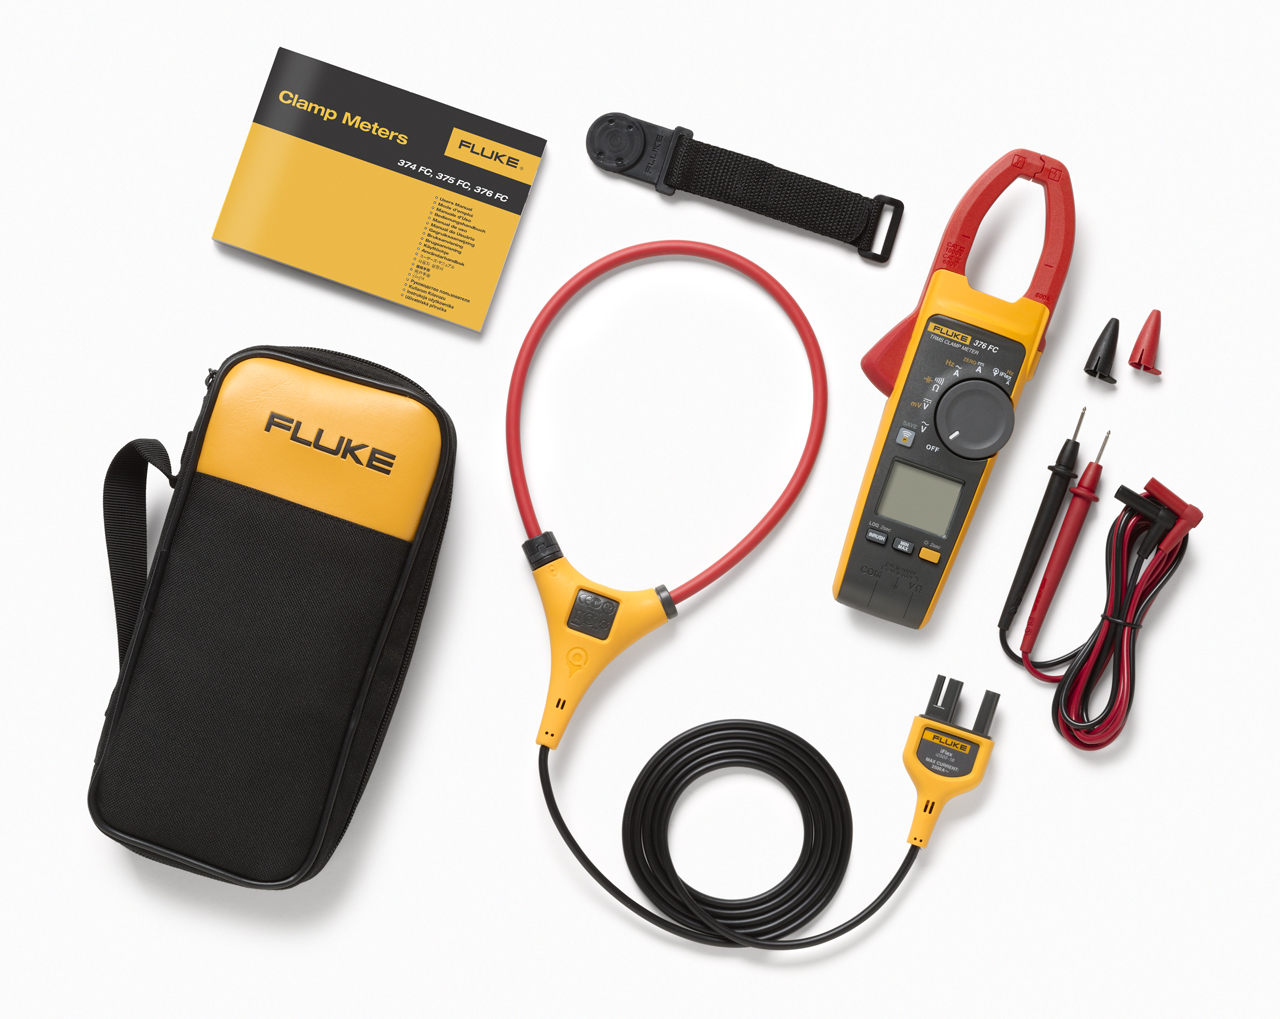 FLUKE 376FC - True RMS AC/DC Clamp Meter with iFlex probe